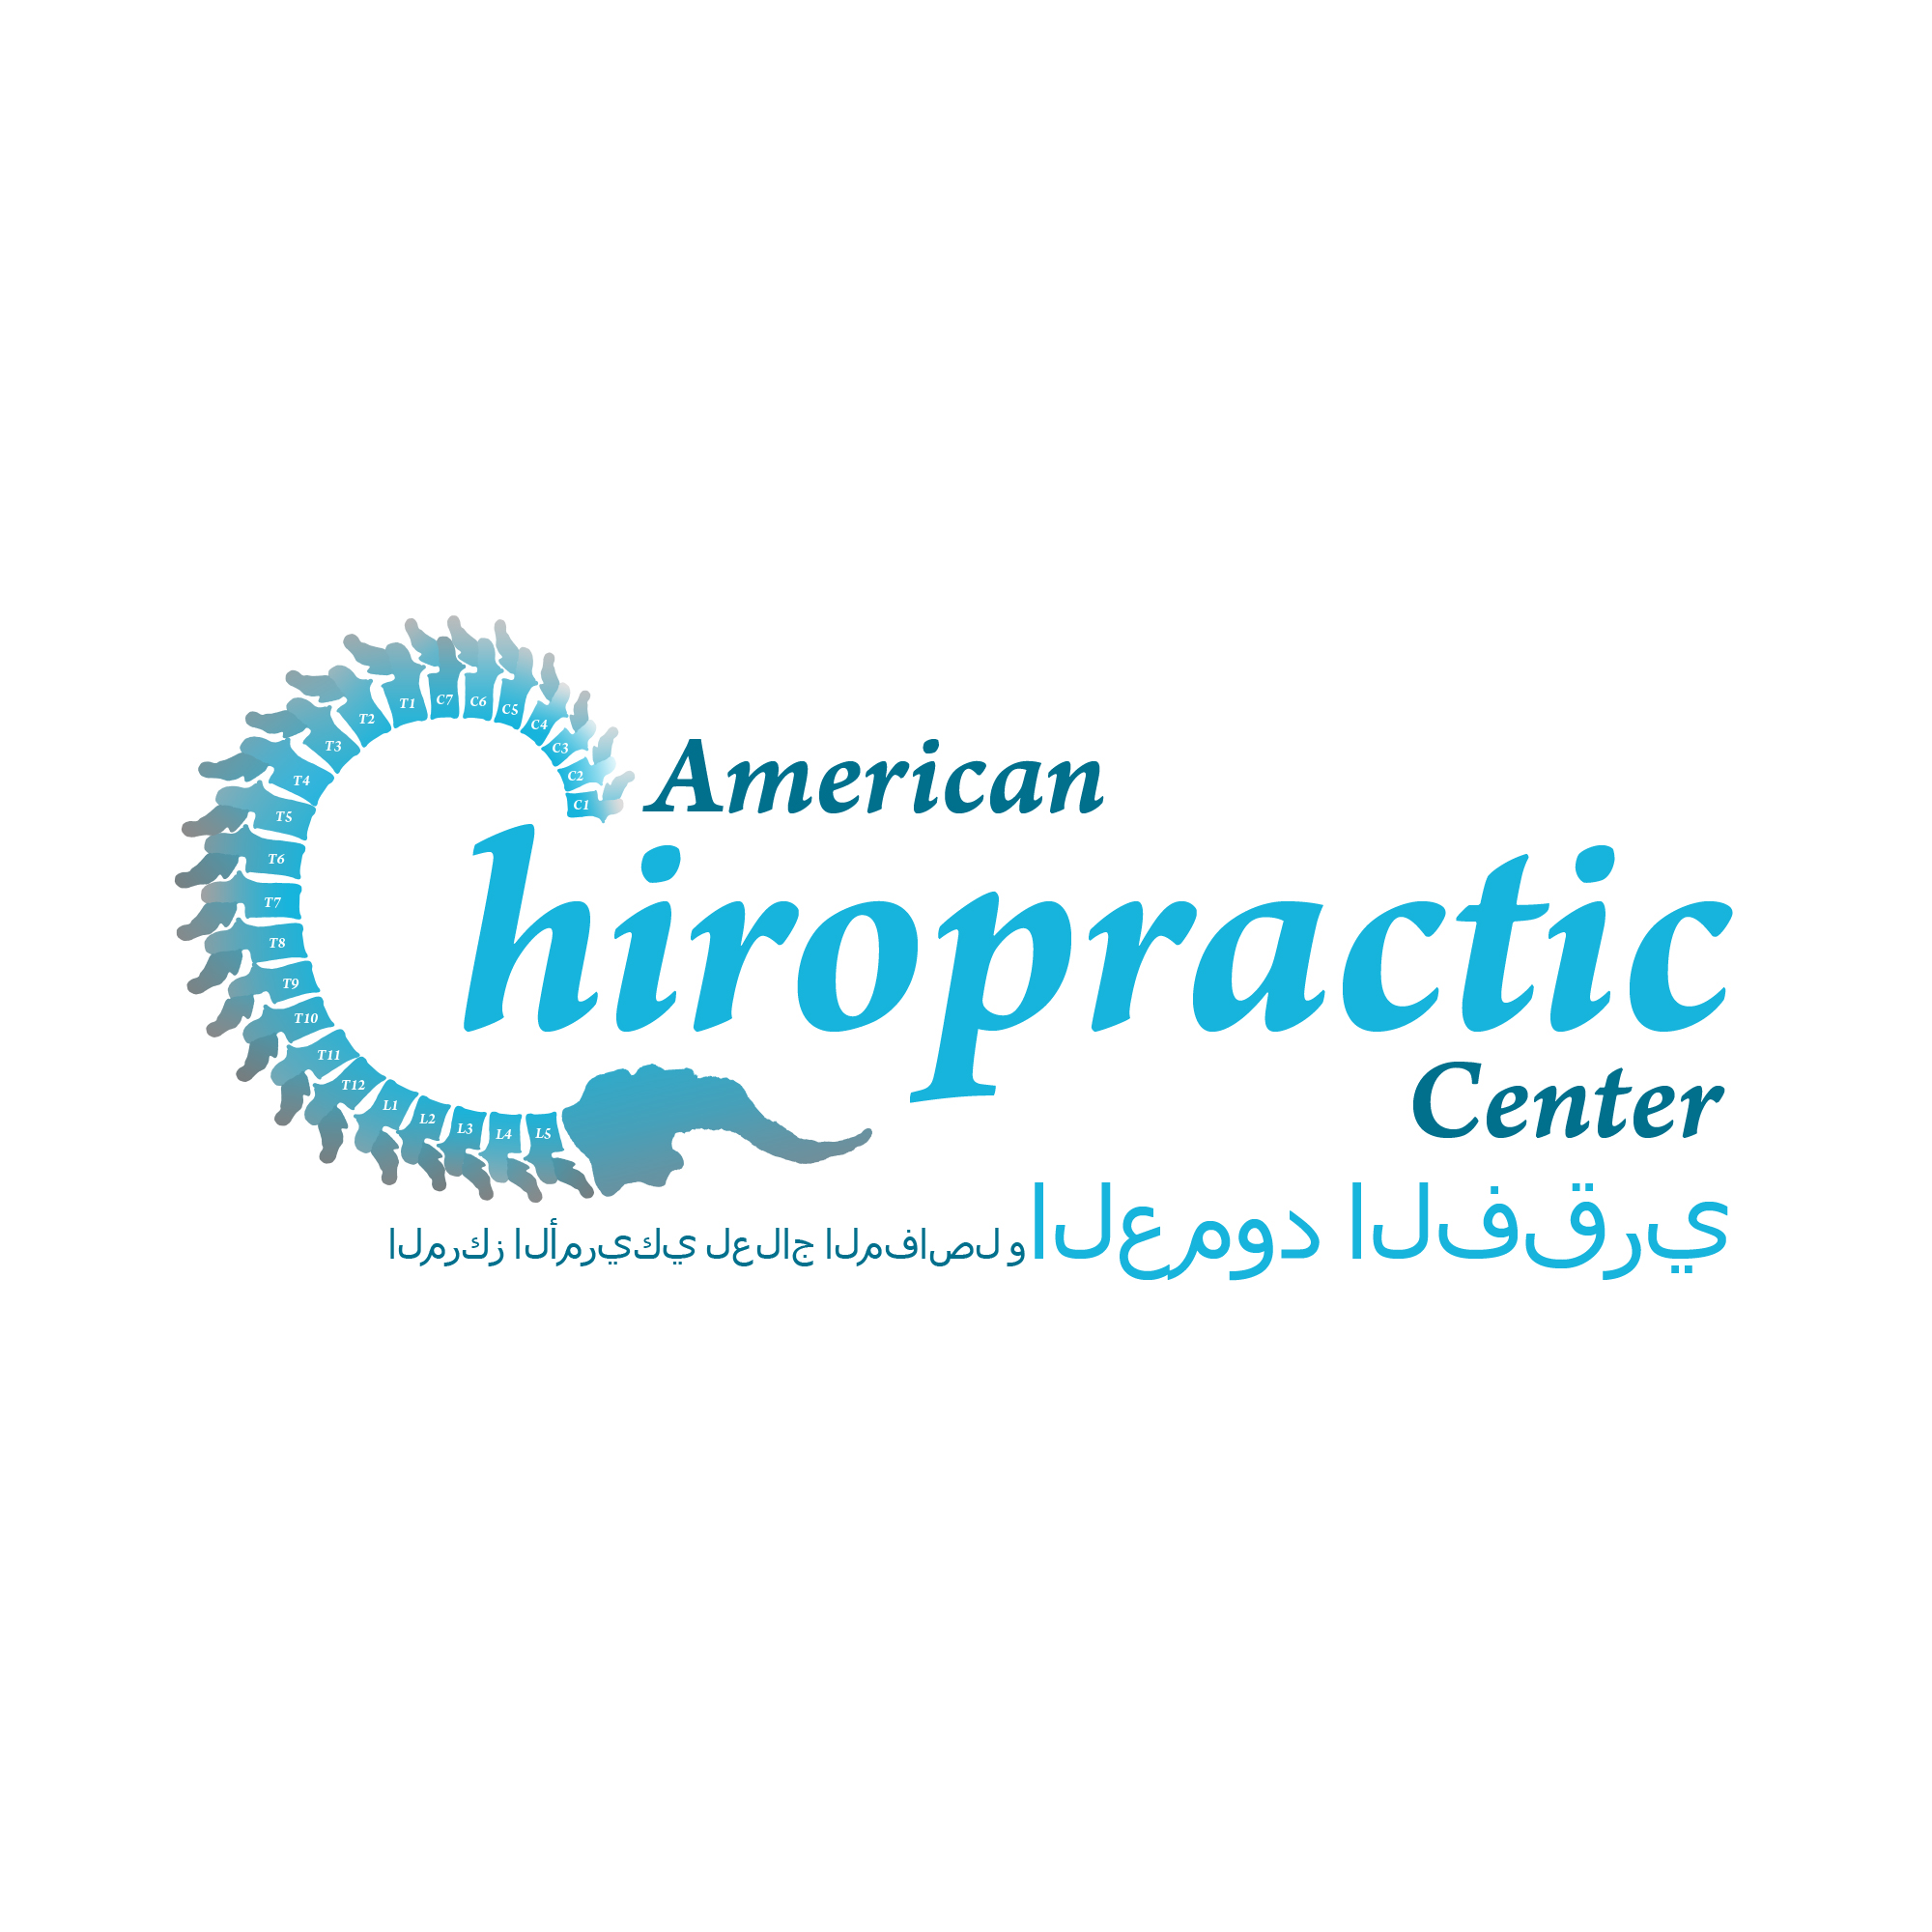 Logo Design by omARTist - Entry No. 199 in the Logo Design Contest Logo Design for American Chiropractic Center.